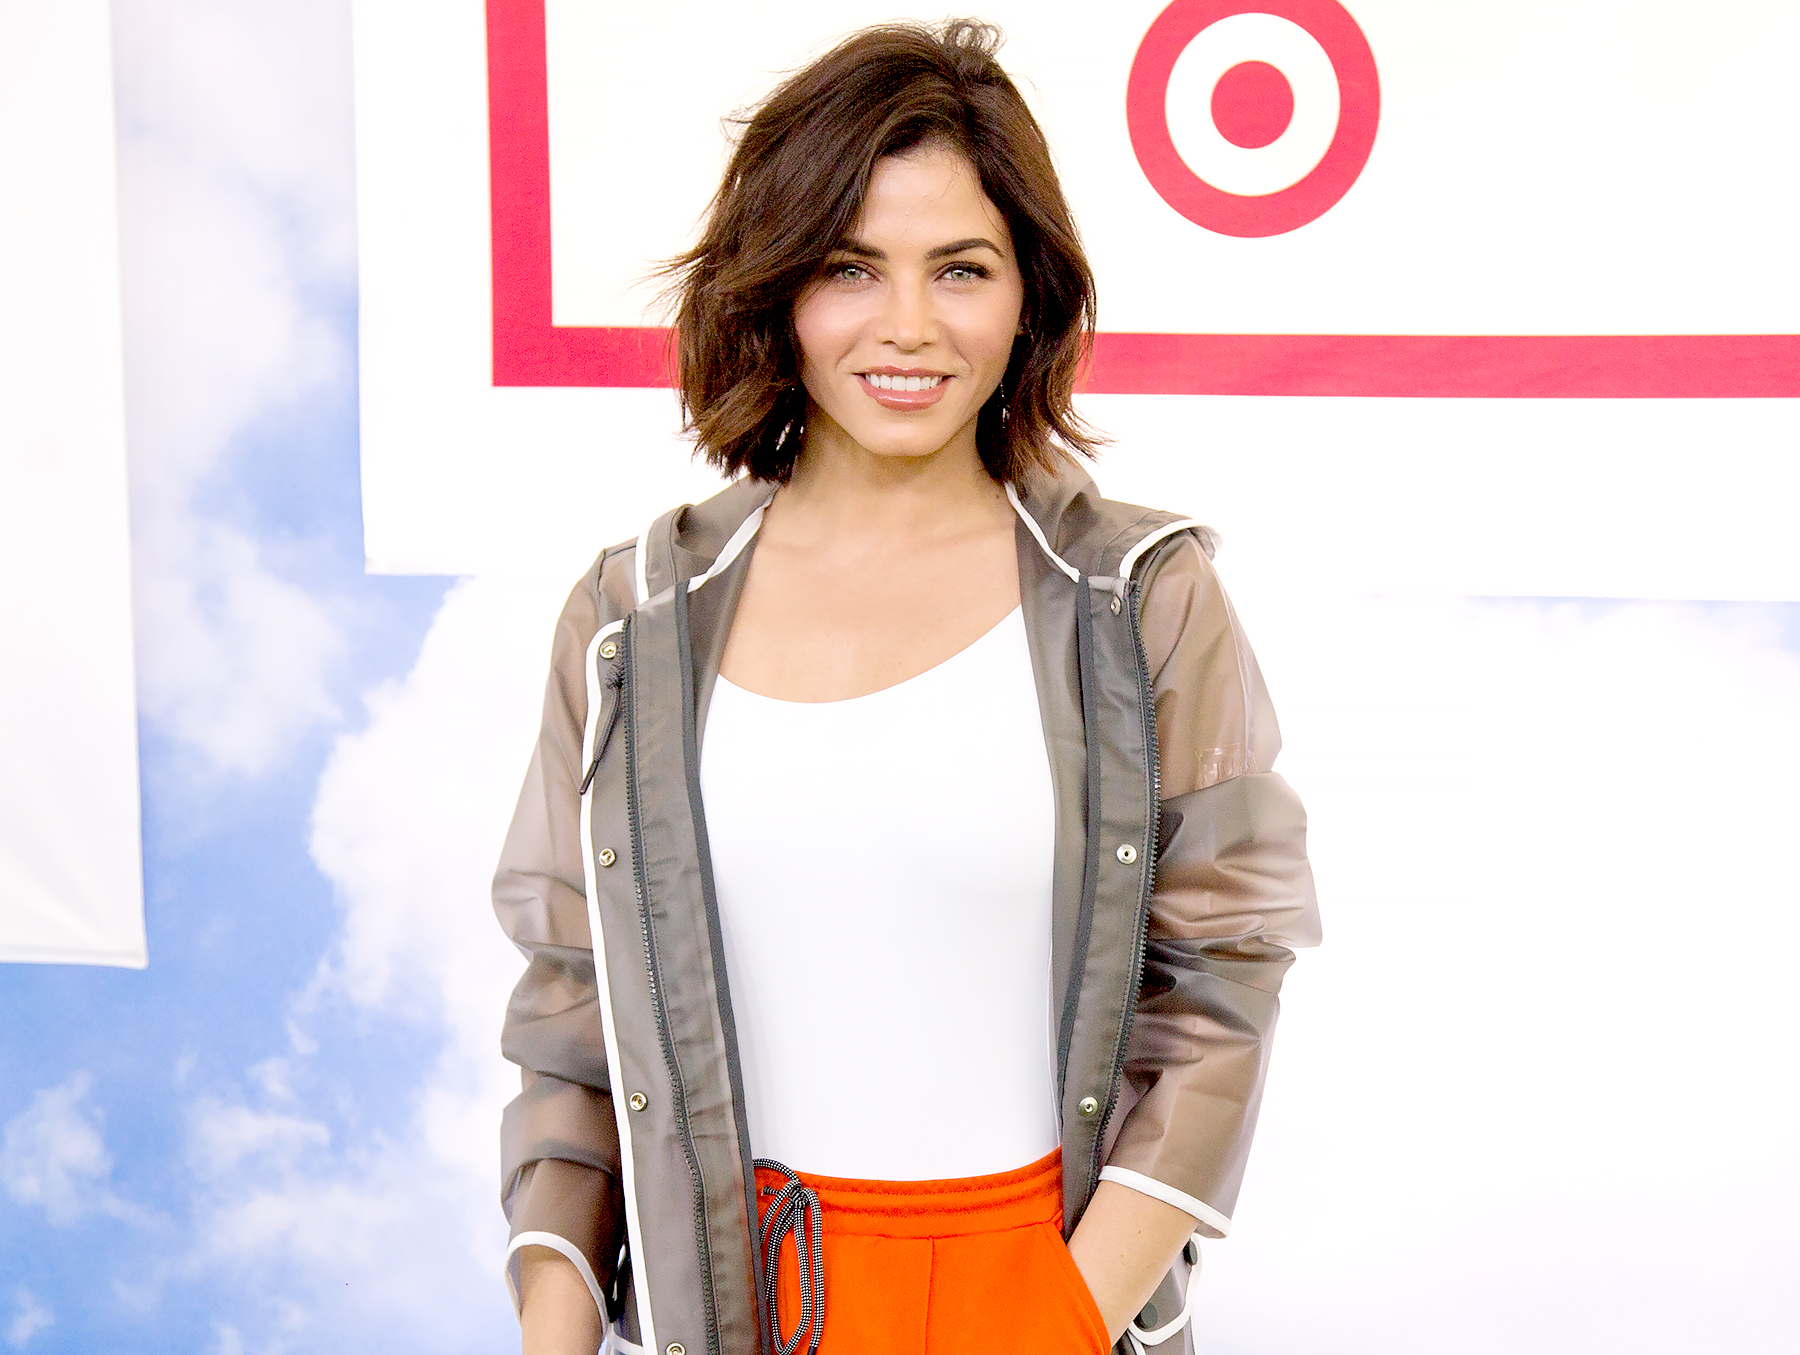 Jenna Dewan Thanks Fans for 'Love' After Channing Tatum Split